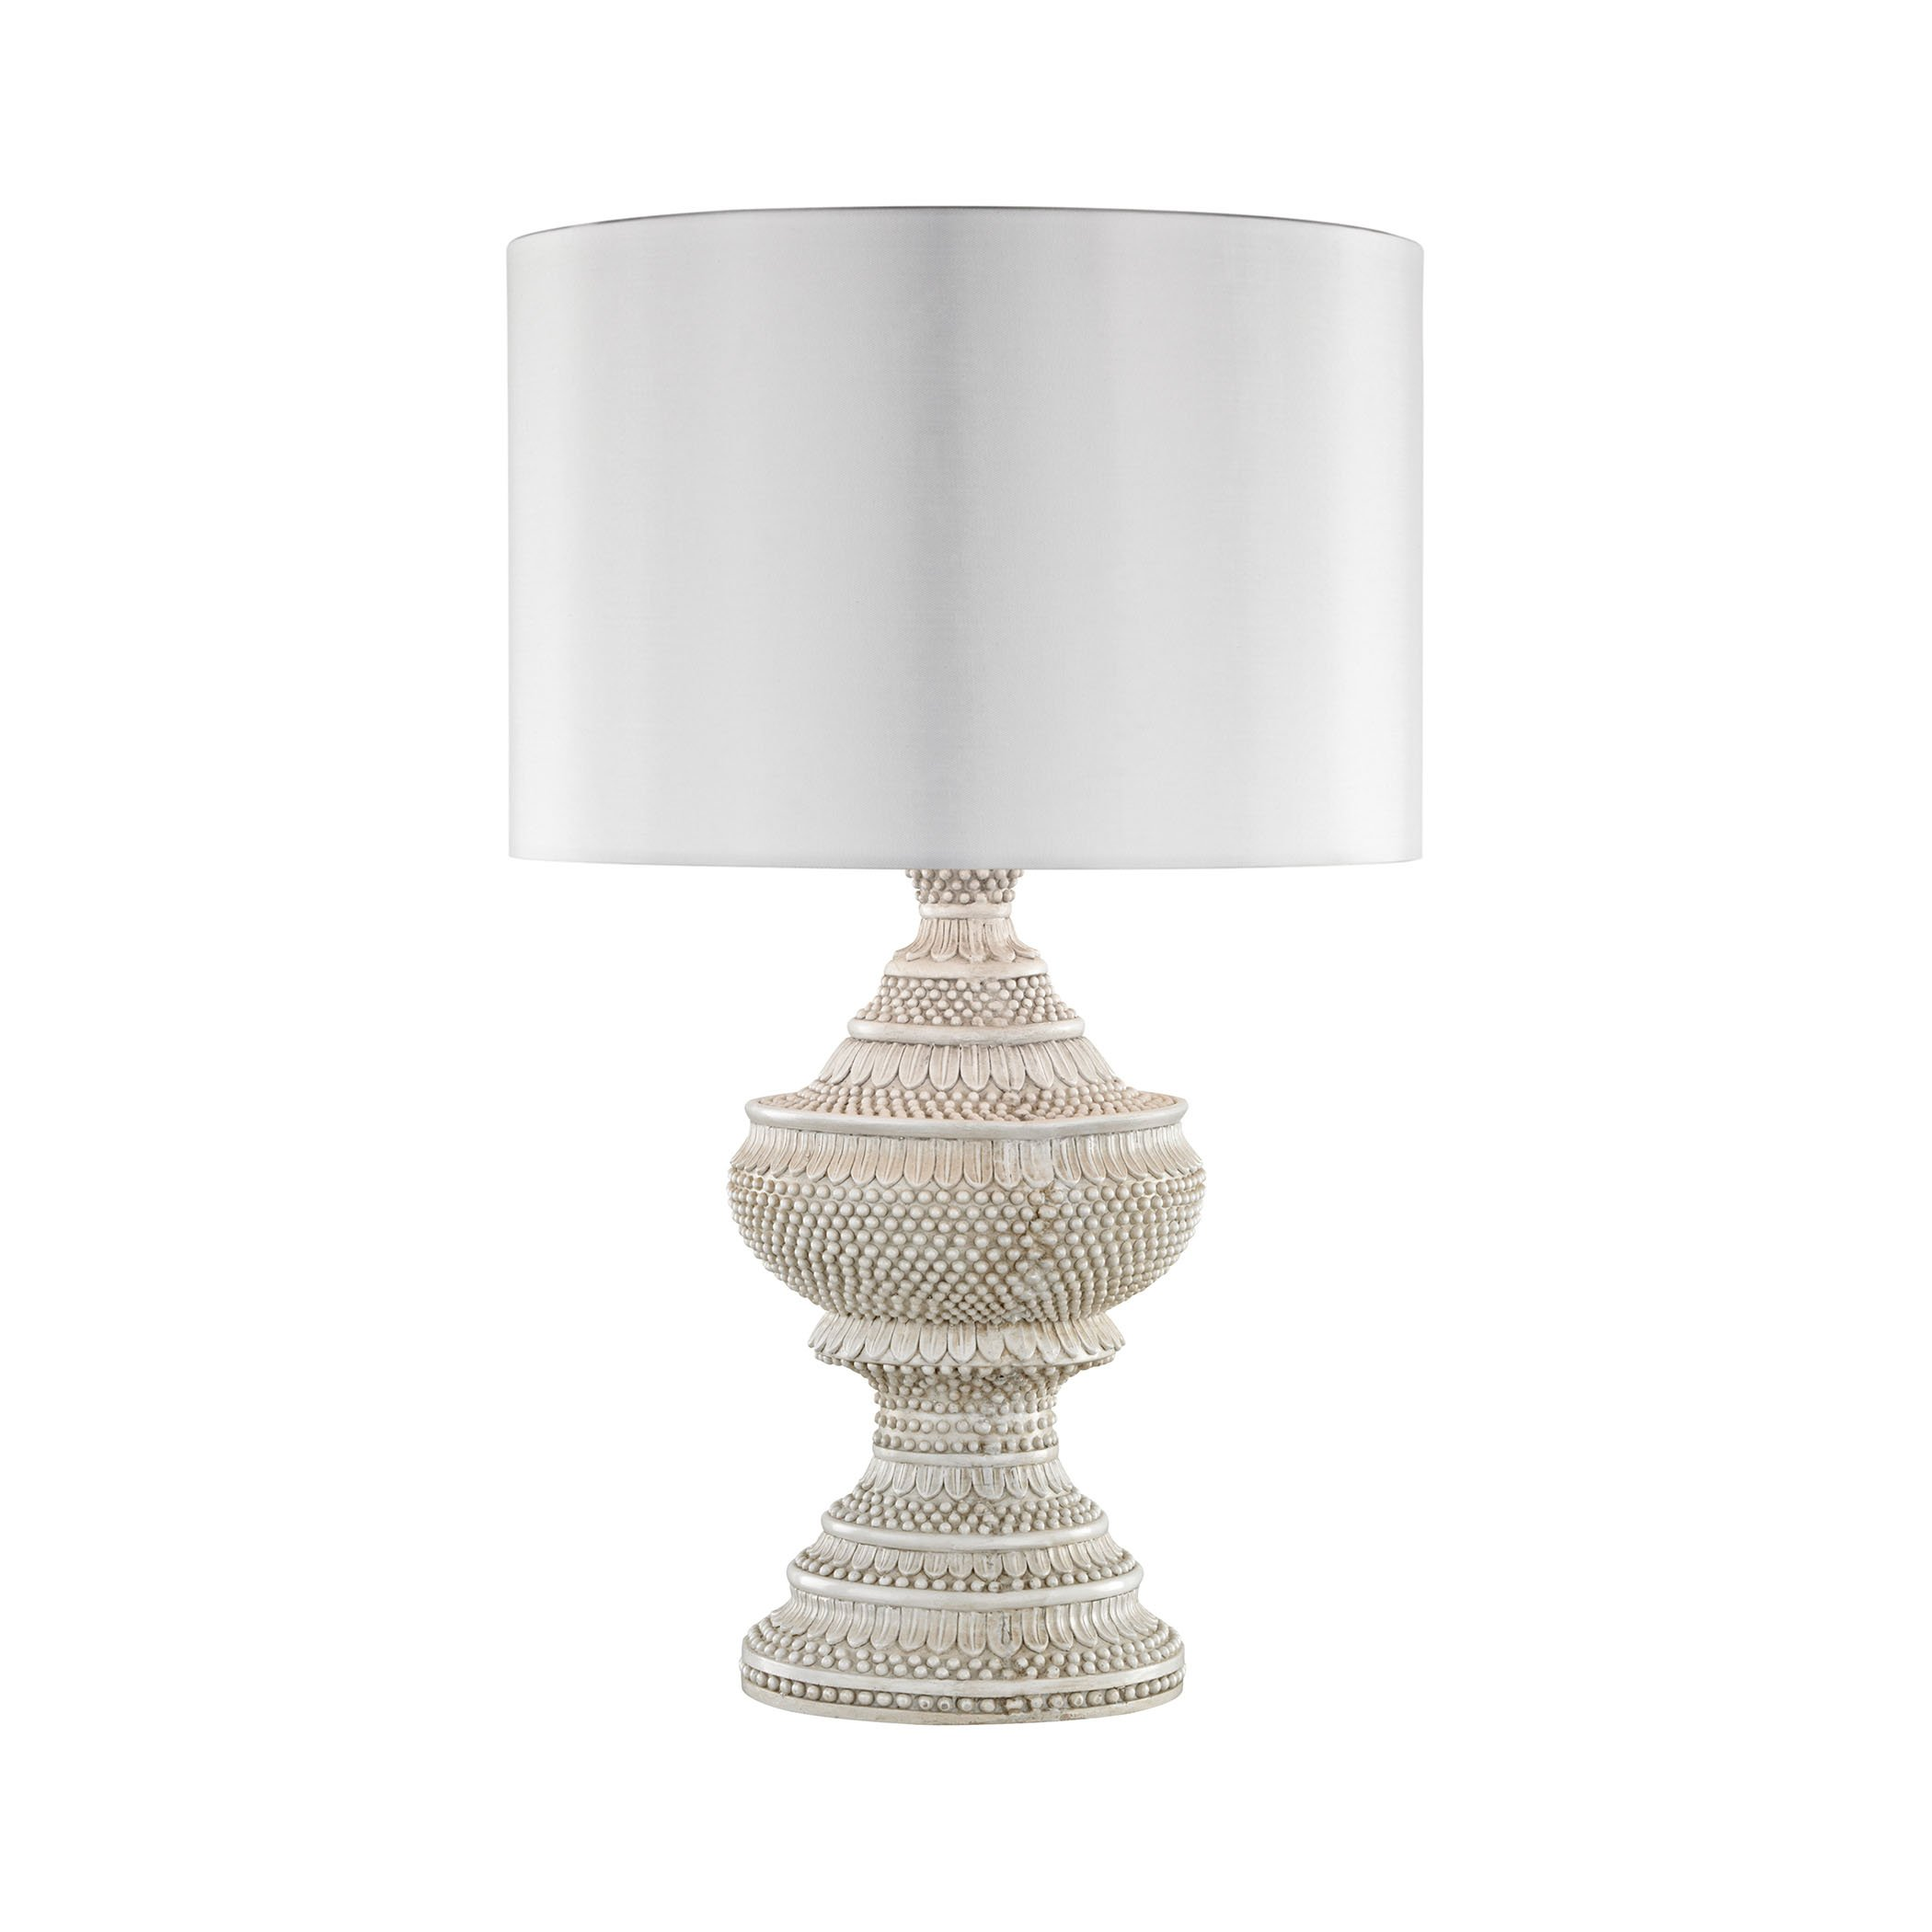 Kokopo Outdoor Table Lamp With White Shade by AR Lighting